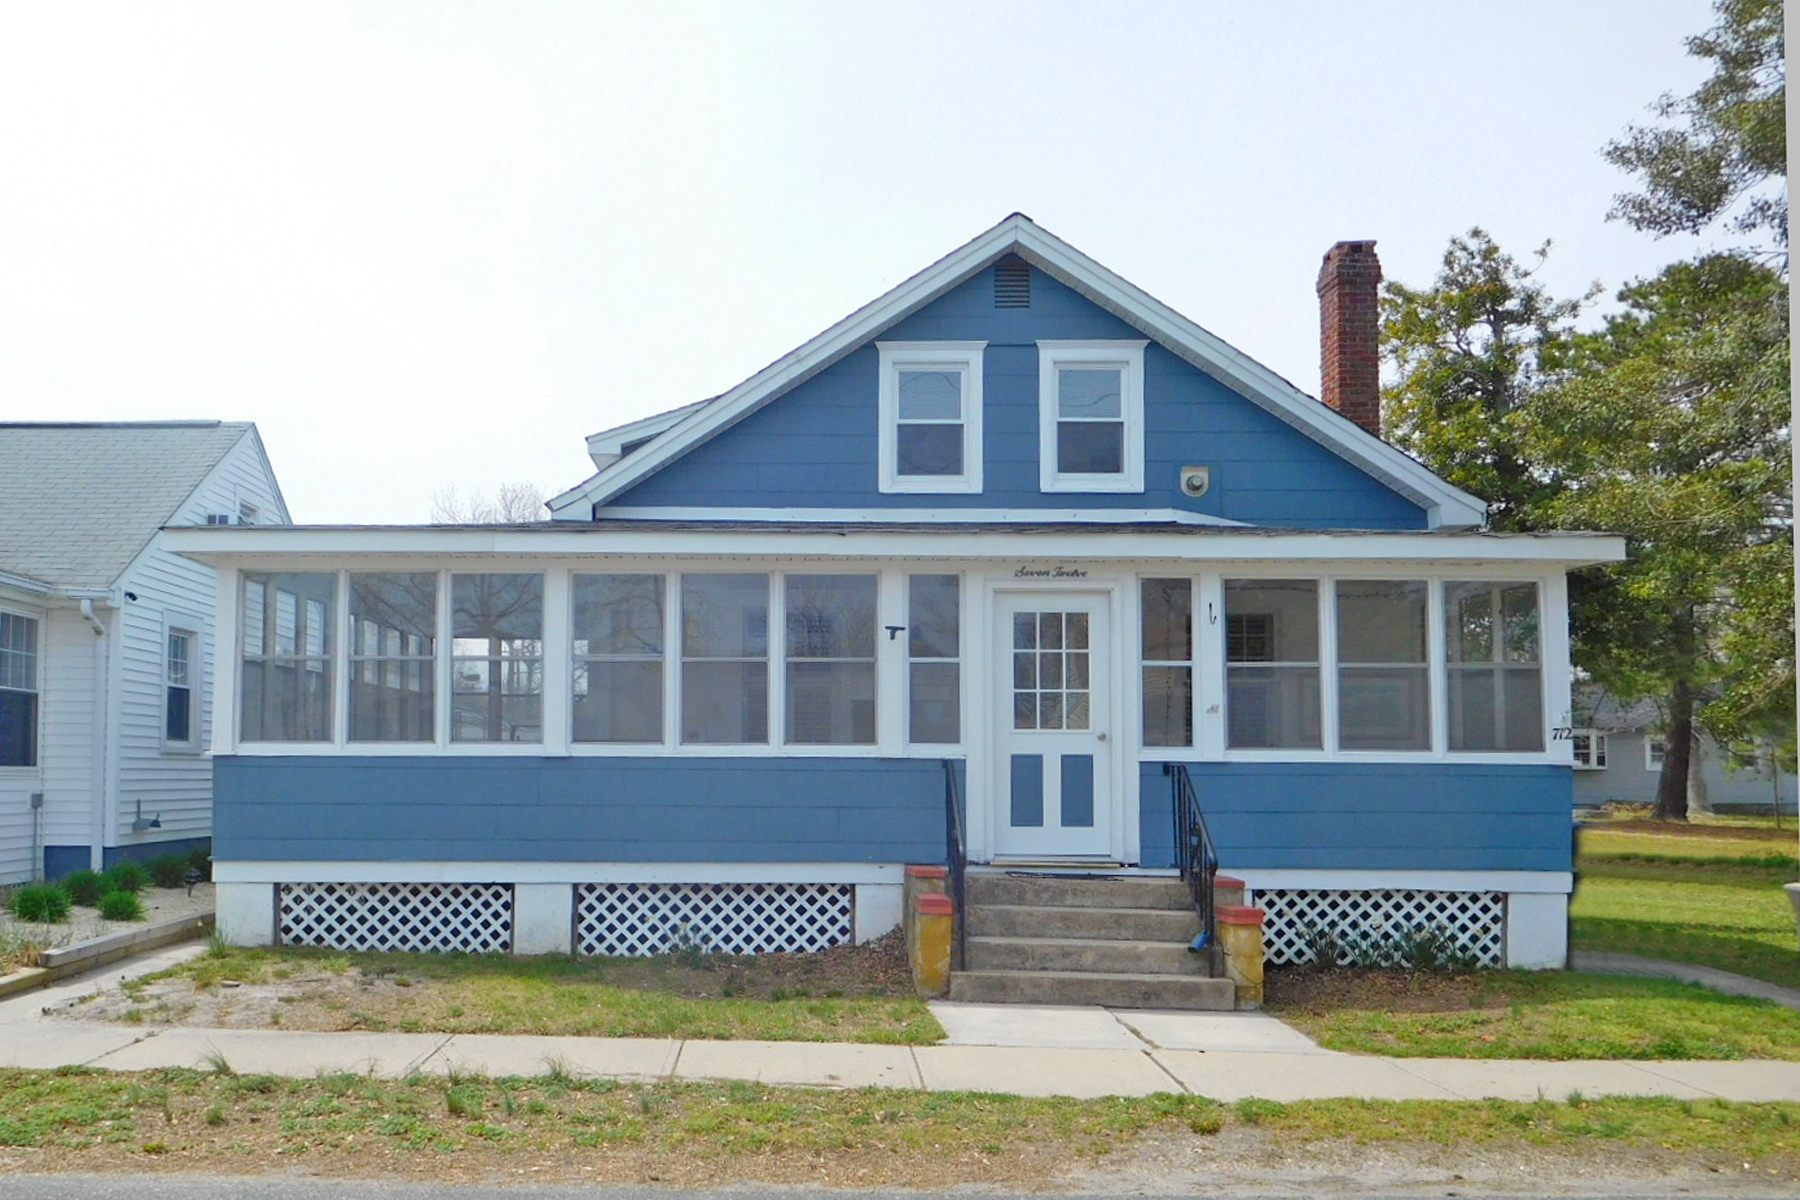 Multi-Family Homes for Sale at Charming Cape Located on Quiet Street 712 Stone Harbor Avenue Ocean Gate, New Jersey 08740 United States